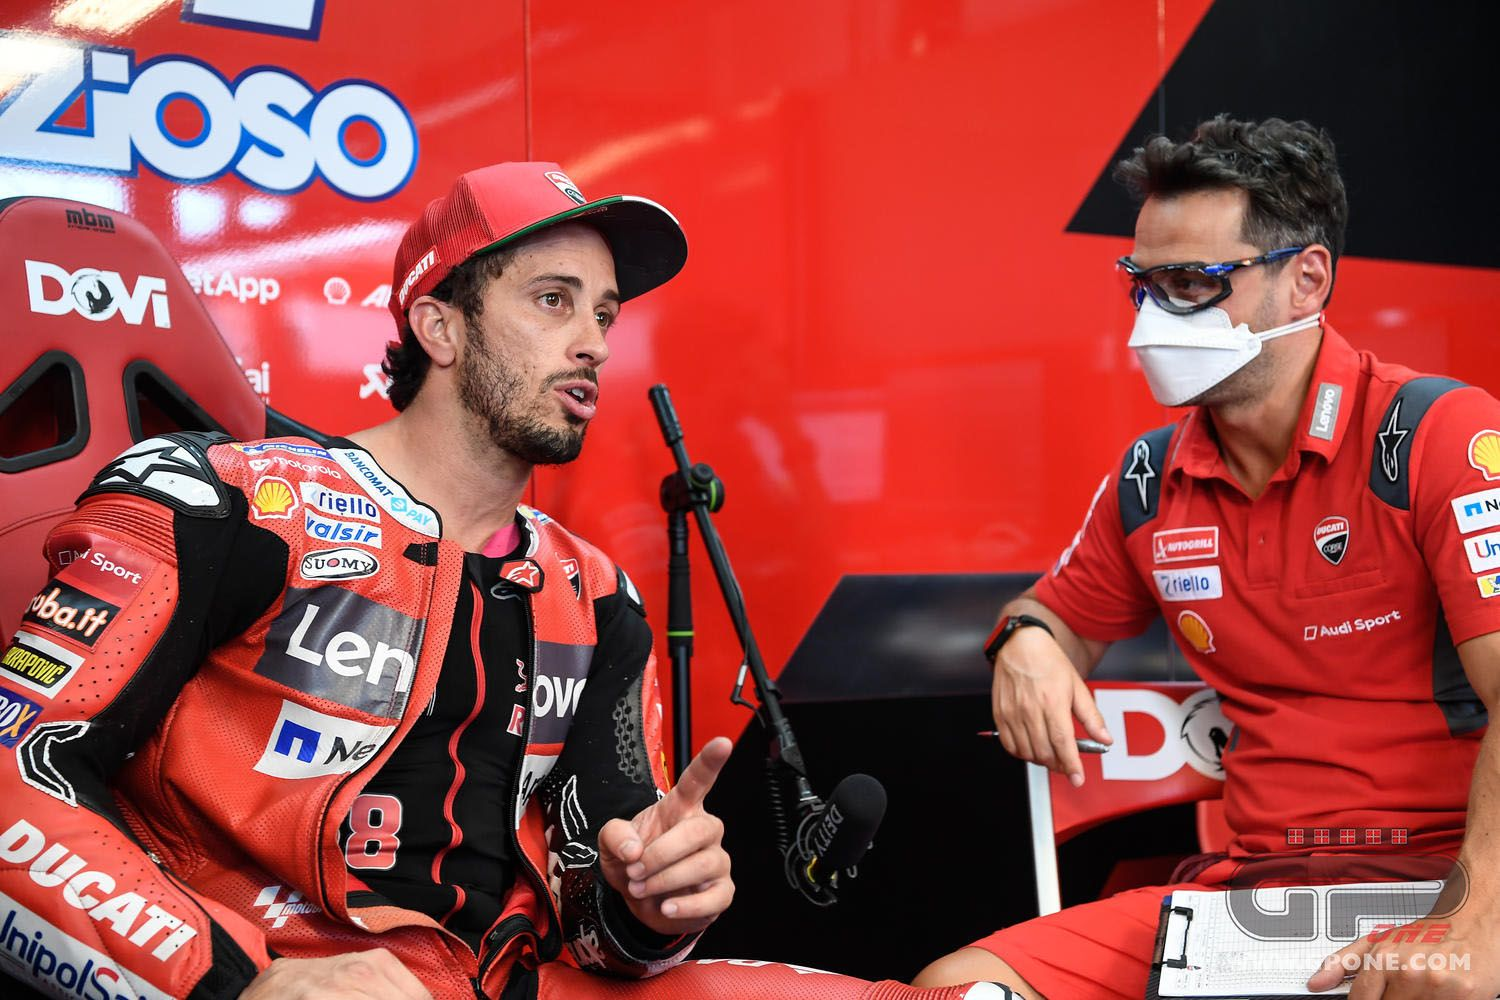 MotoGP, Dovizioso: I'm not understanding anything, here we should have kicked everyone's ass - GPone English